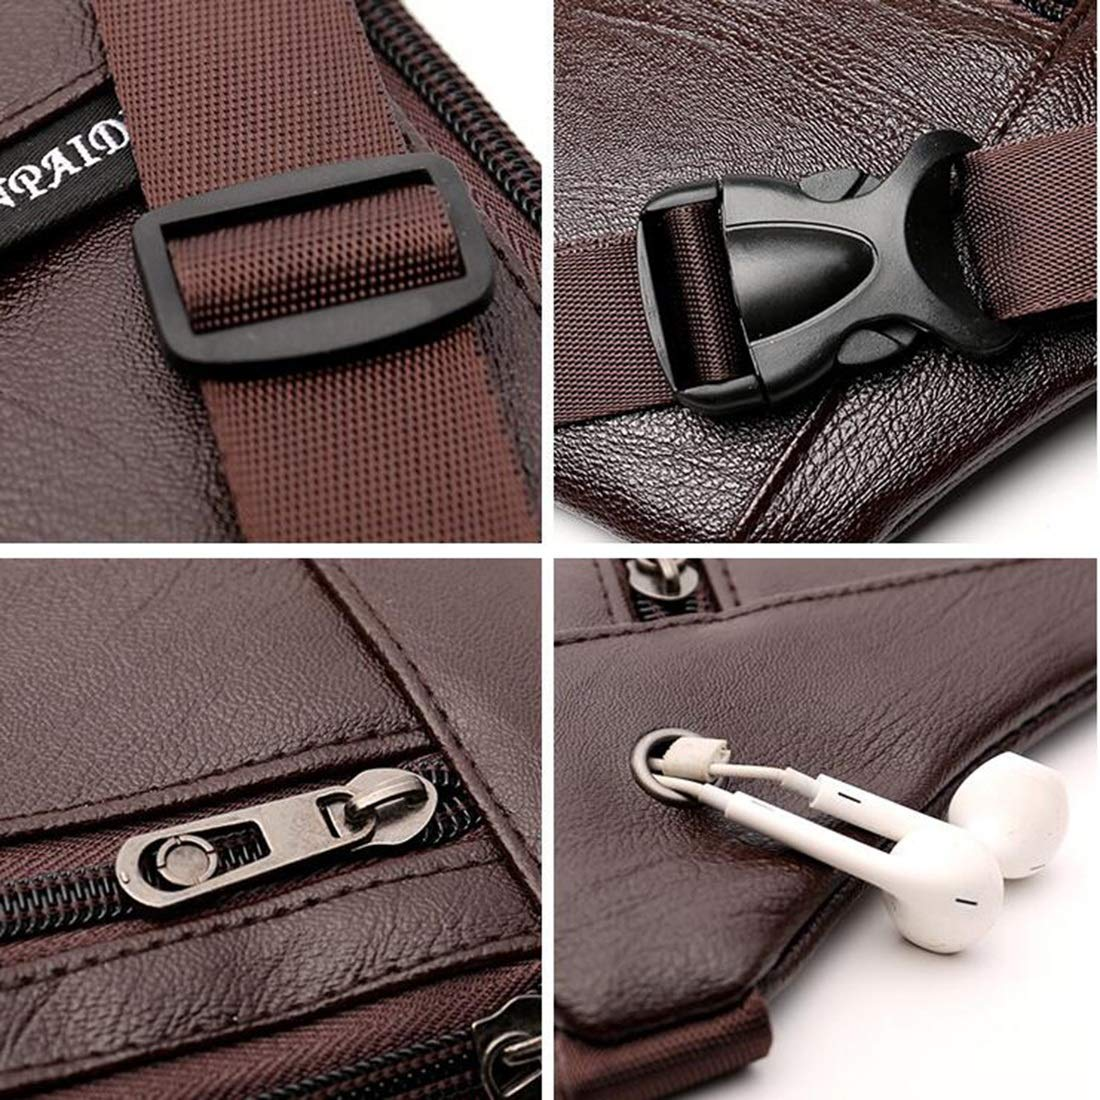 Color : Brown RABILTY Waist Bag West Pouch Pocket Many Mens PU Leather 2WAY Body Bag for Thin Male Men